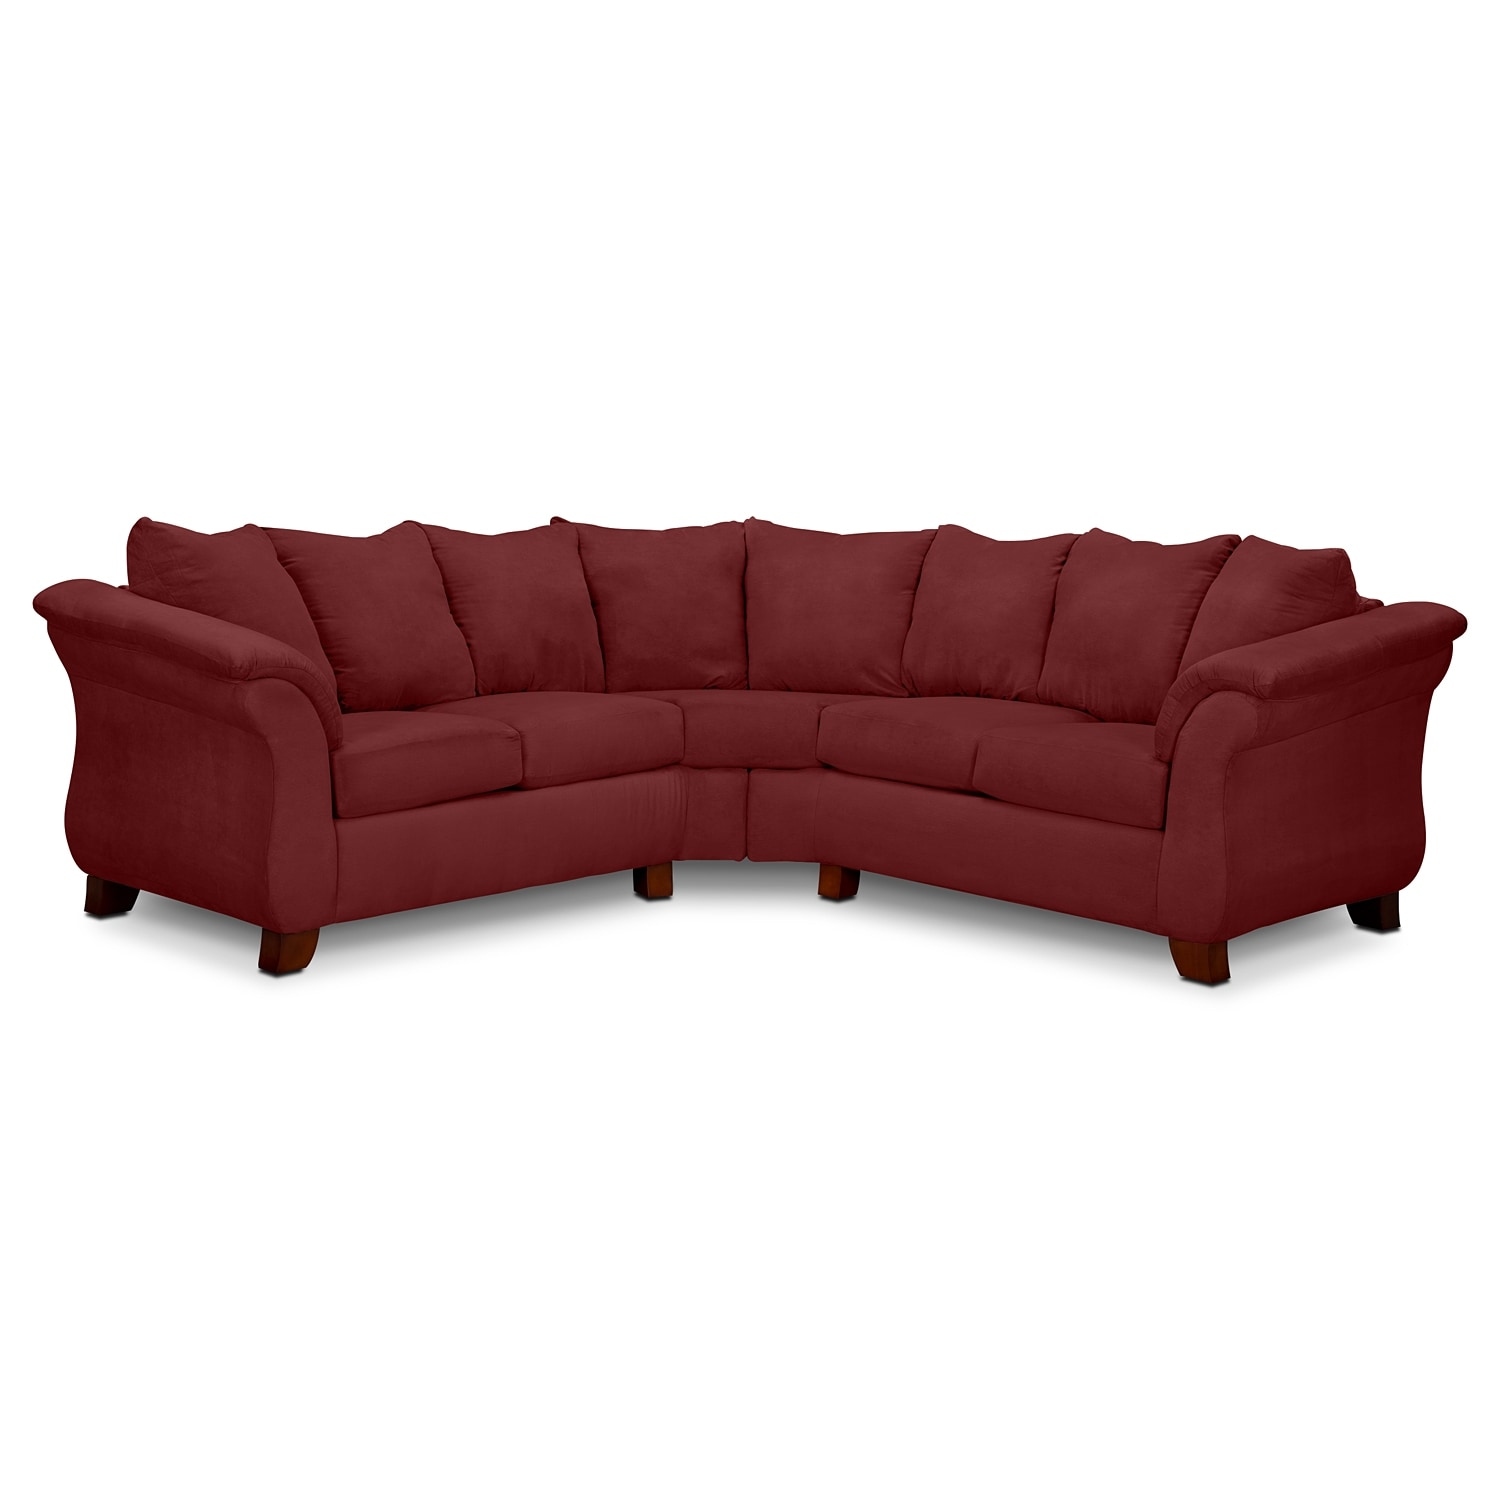 Adrian Red 2-Piece Sectional - Red